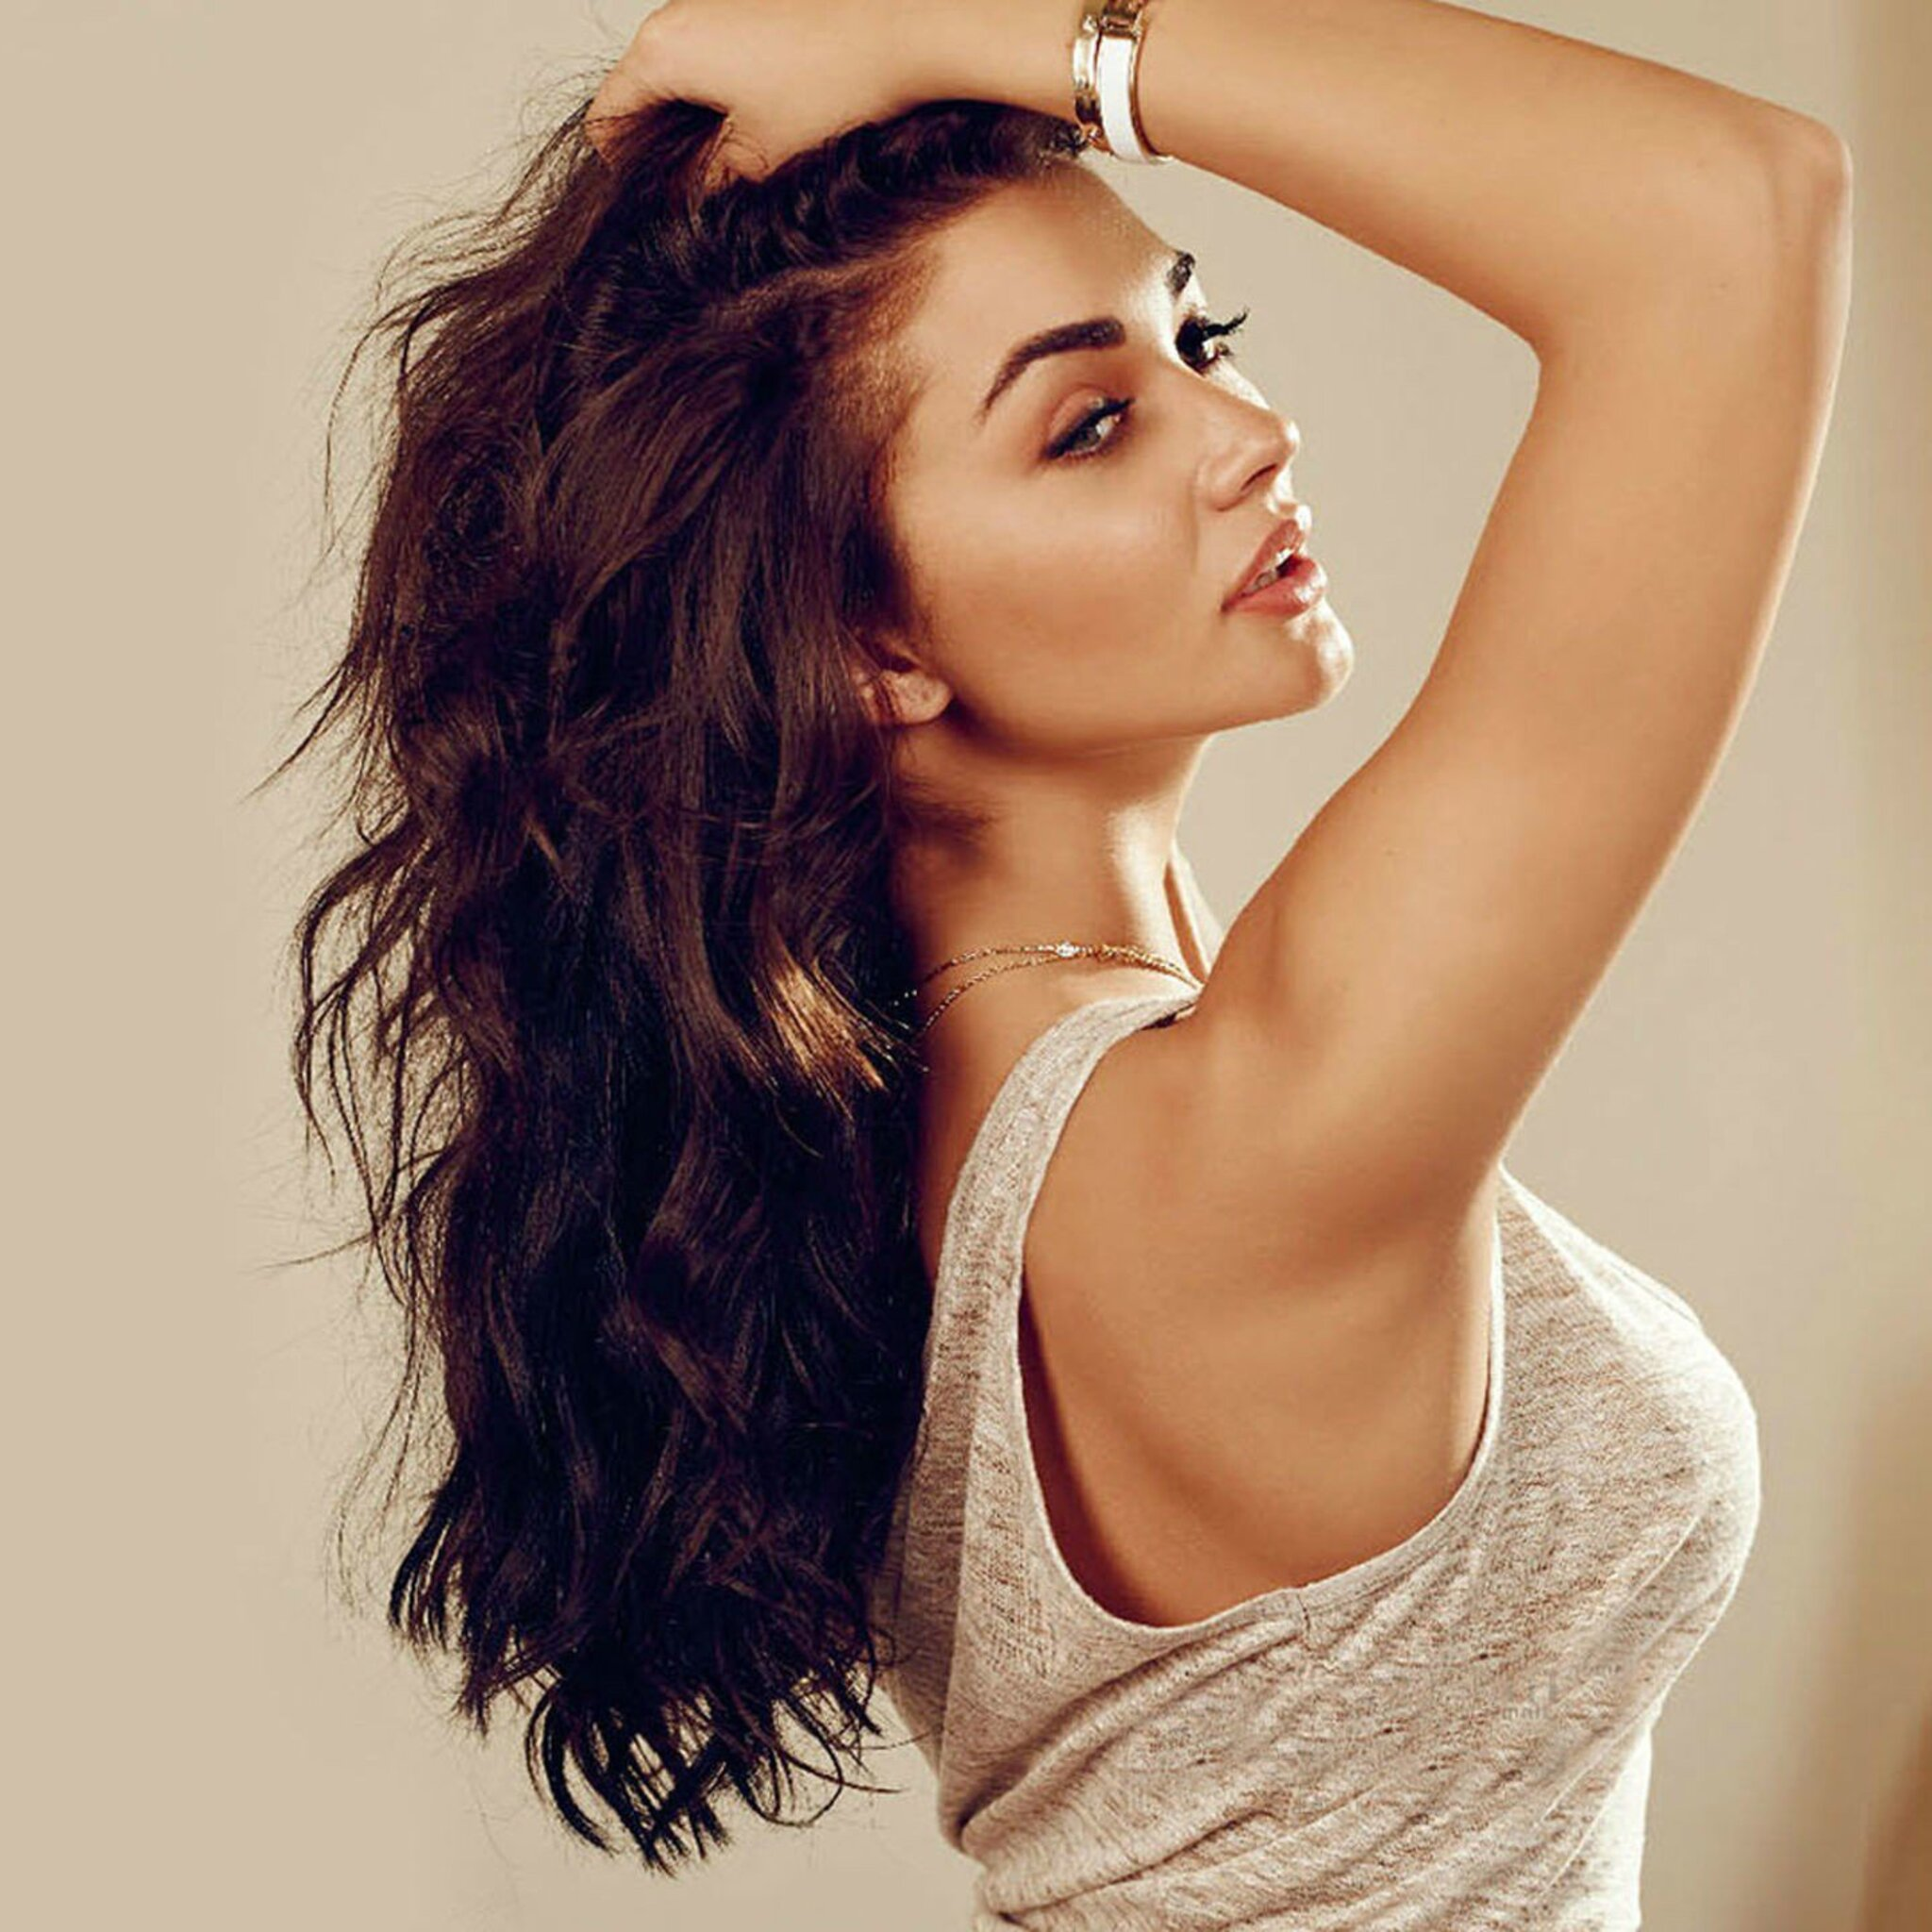 2048x2048 amy jackson indian ipad air hd 4k wallpapers, images